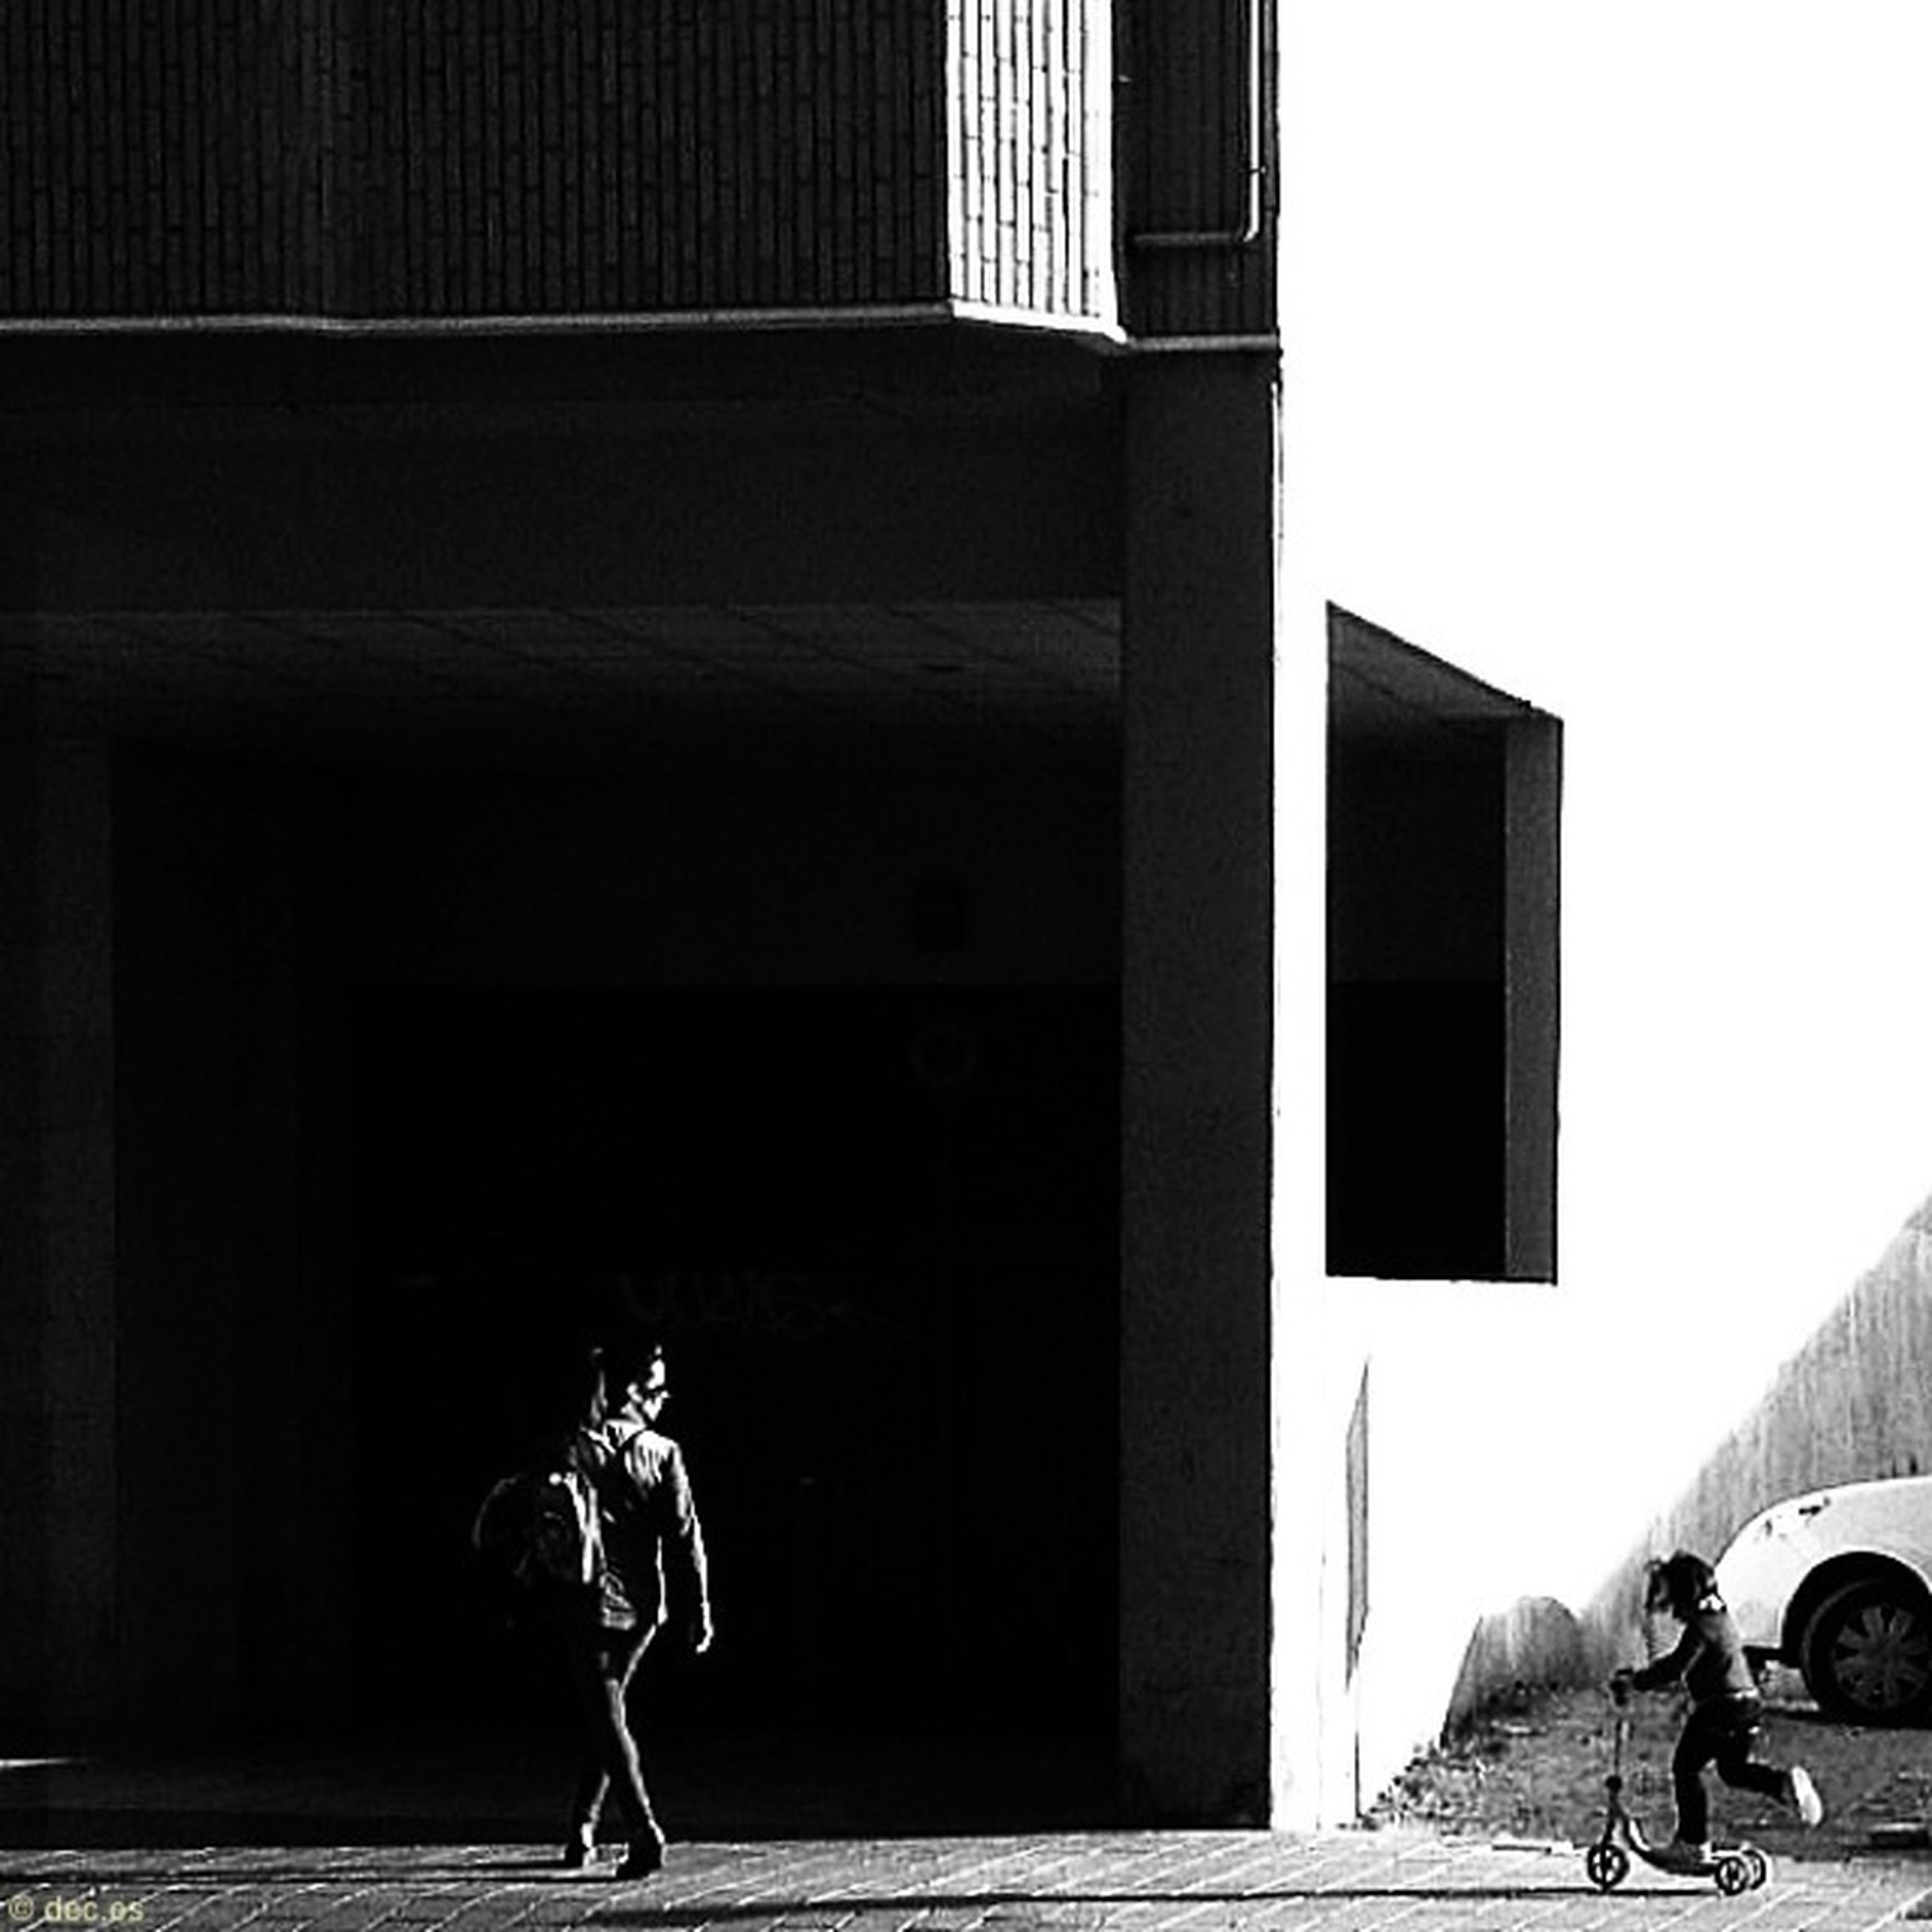 building exterior, architecture, built structure, lifestyles, full length, street, leisure activity, side view, city, men, casual clothing, rear view, walking, person, outdoors, city life, road, day